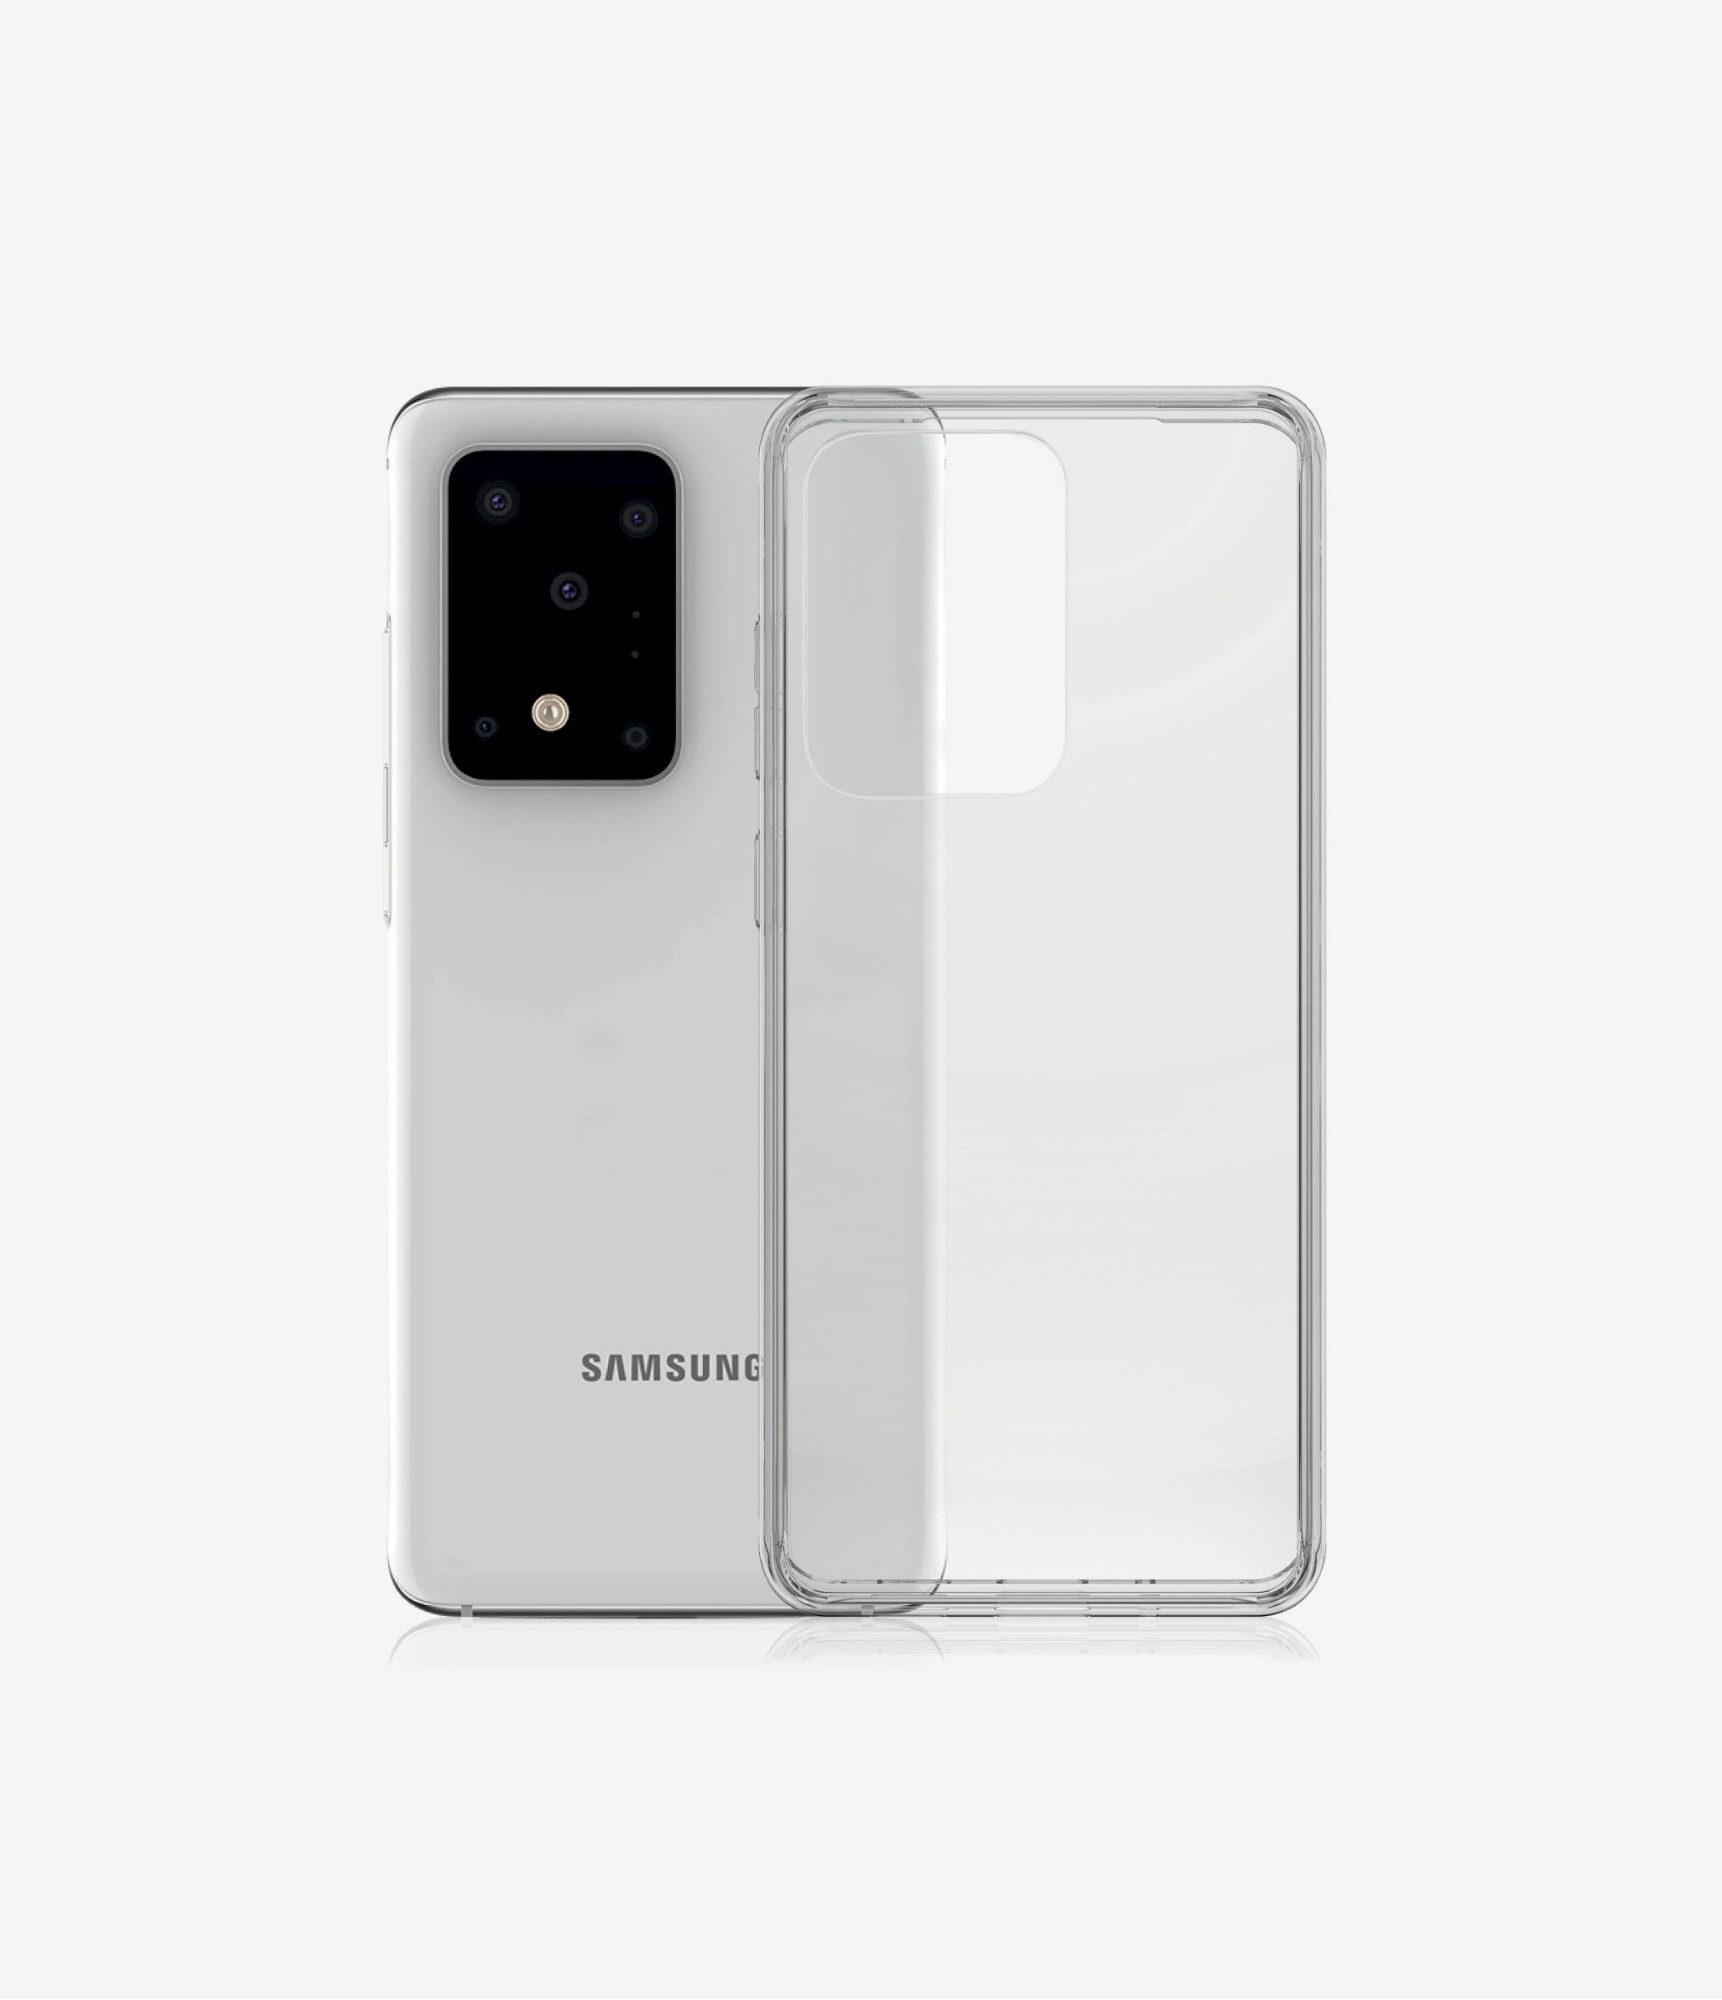 CLEARCASE GALAXY NEW S ULTRA-SERIES